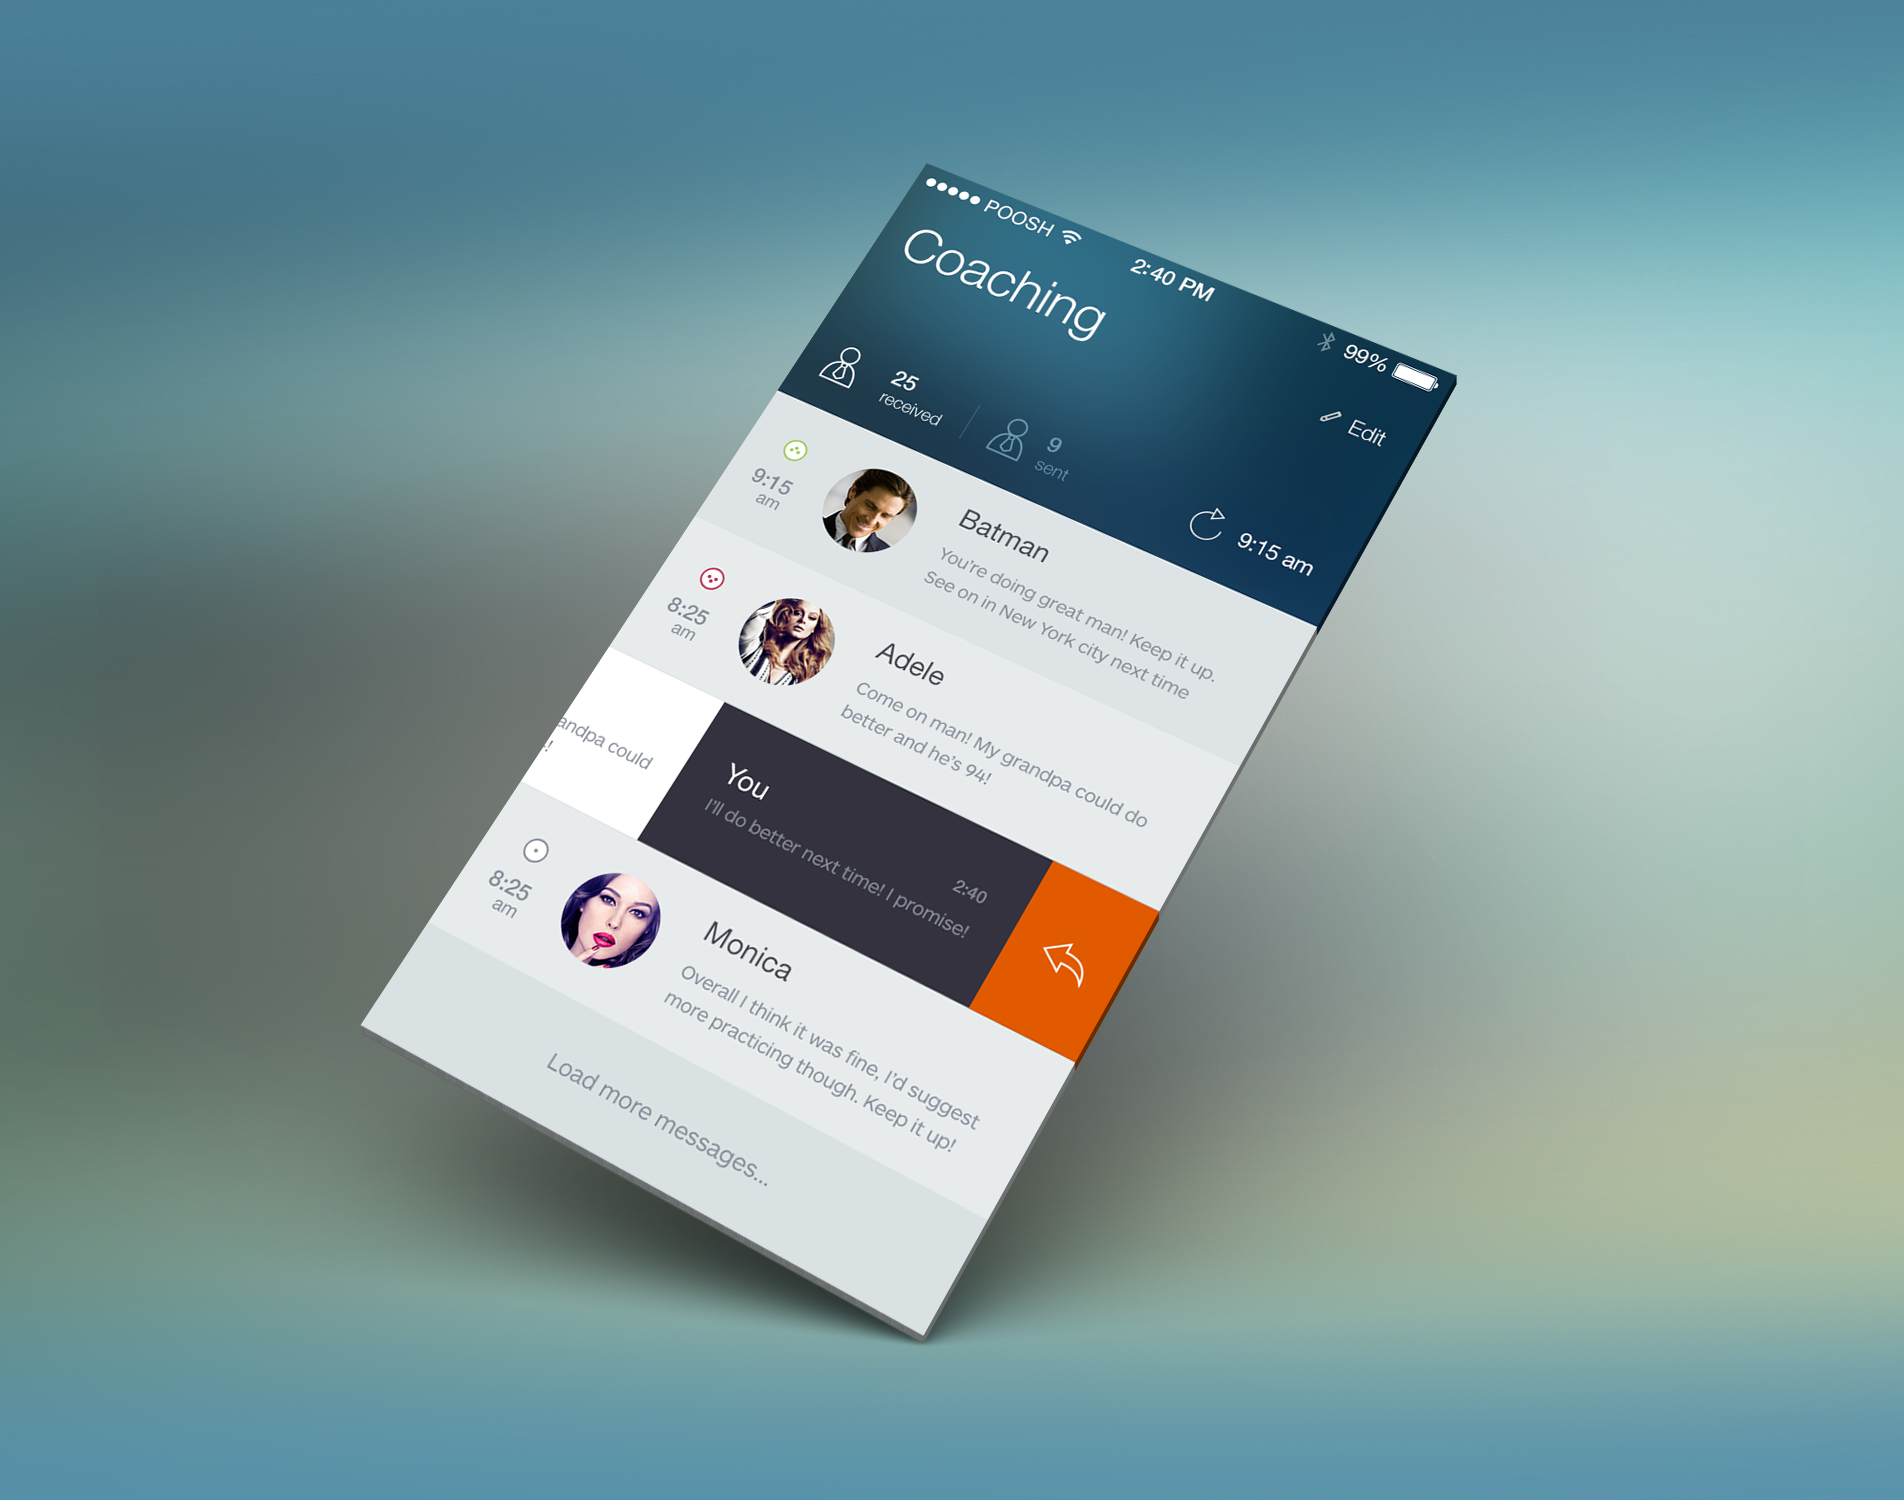 1000+ images about User interface design on Pinterest | Ui design ...